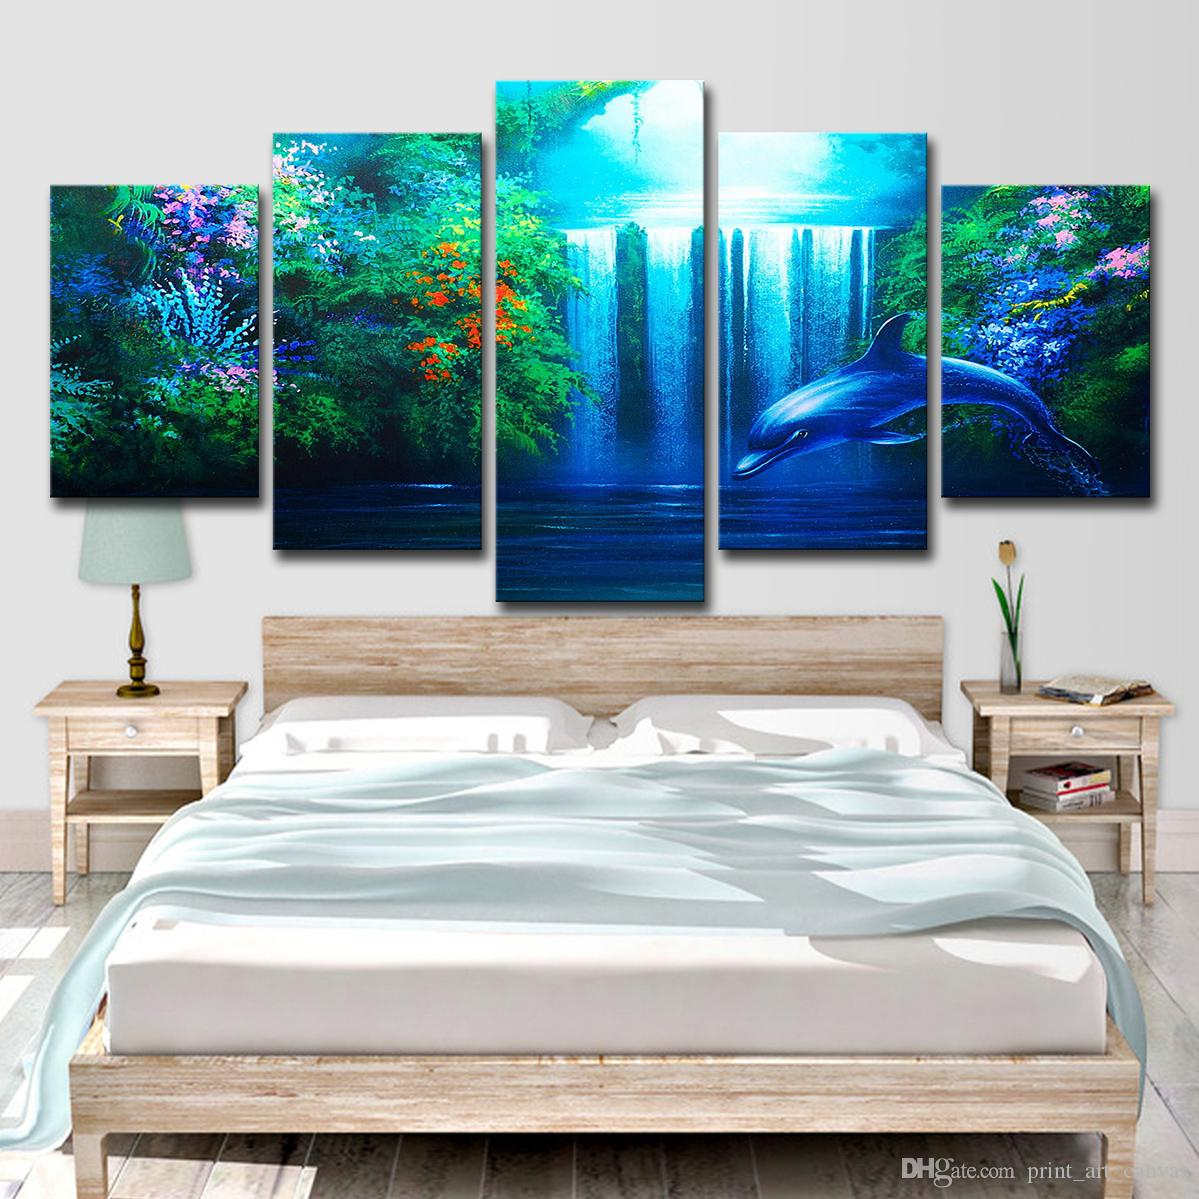 Wall art pictures home decor living room hd printed 5 pieces calming dolphin waterfall poster landscape canvas paintings